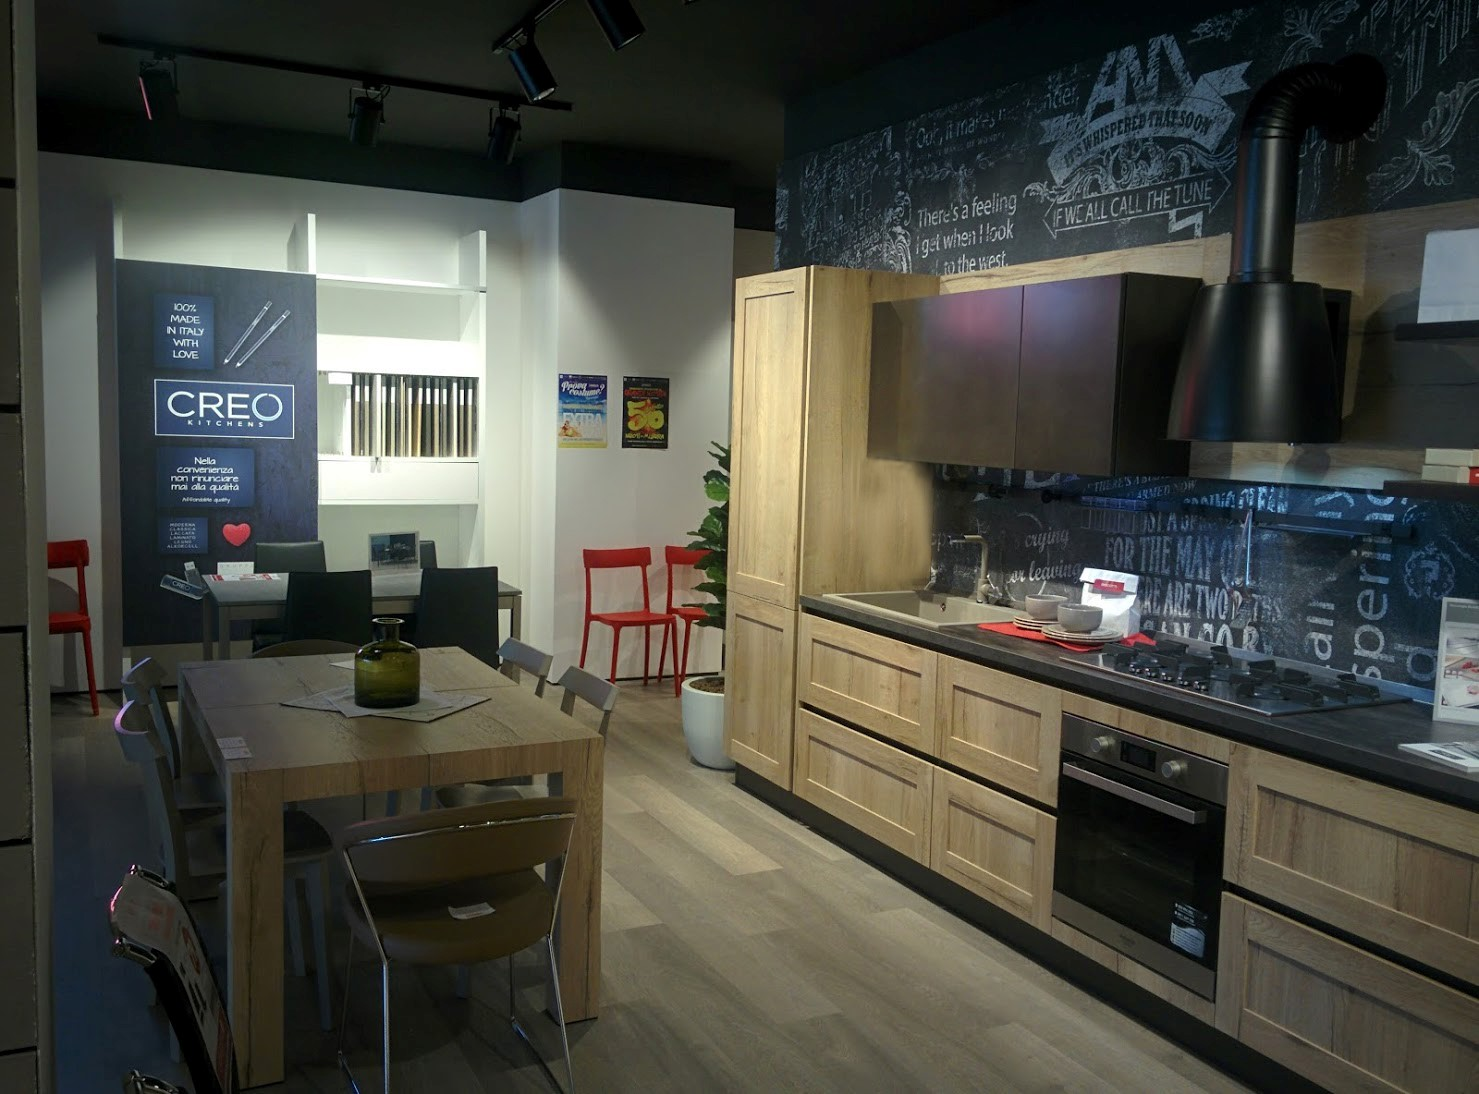 After The Success Of The Store Opening In Thiene, Gruppo Lube Is Confirming  Its Partnership With ARREDOGROUP Srl And Inaugurating A New Creo Kitchens  Store ...